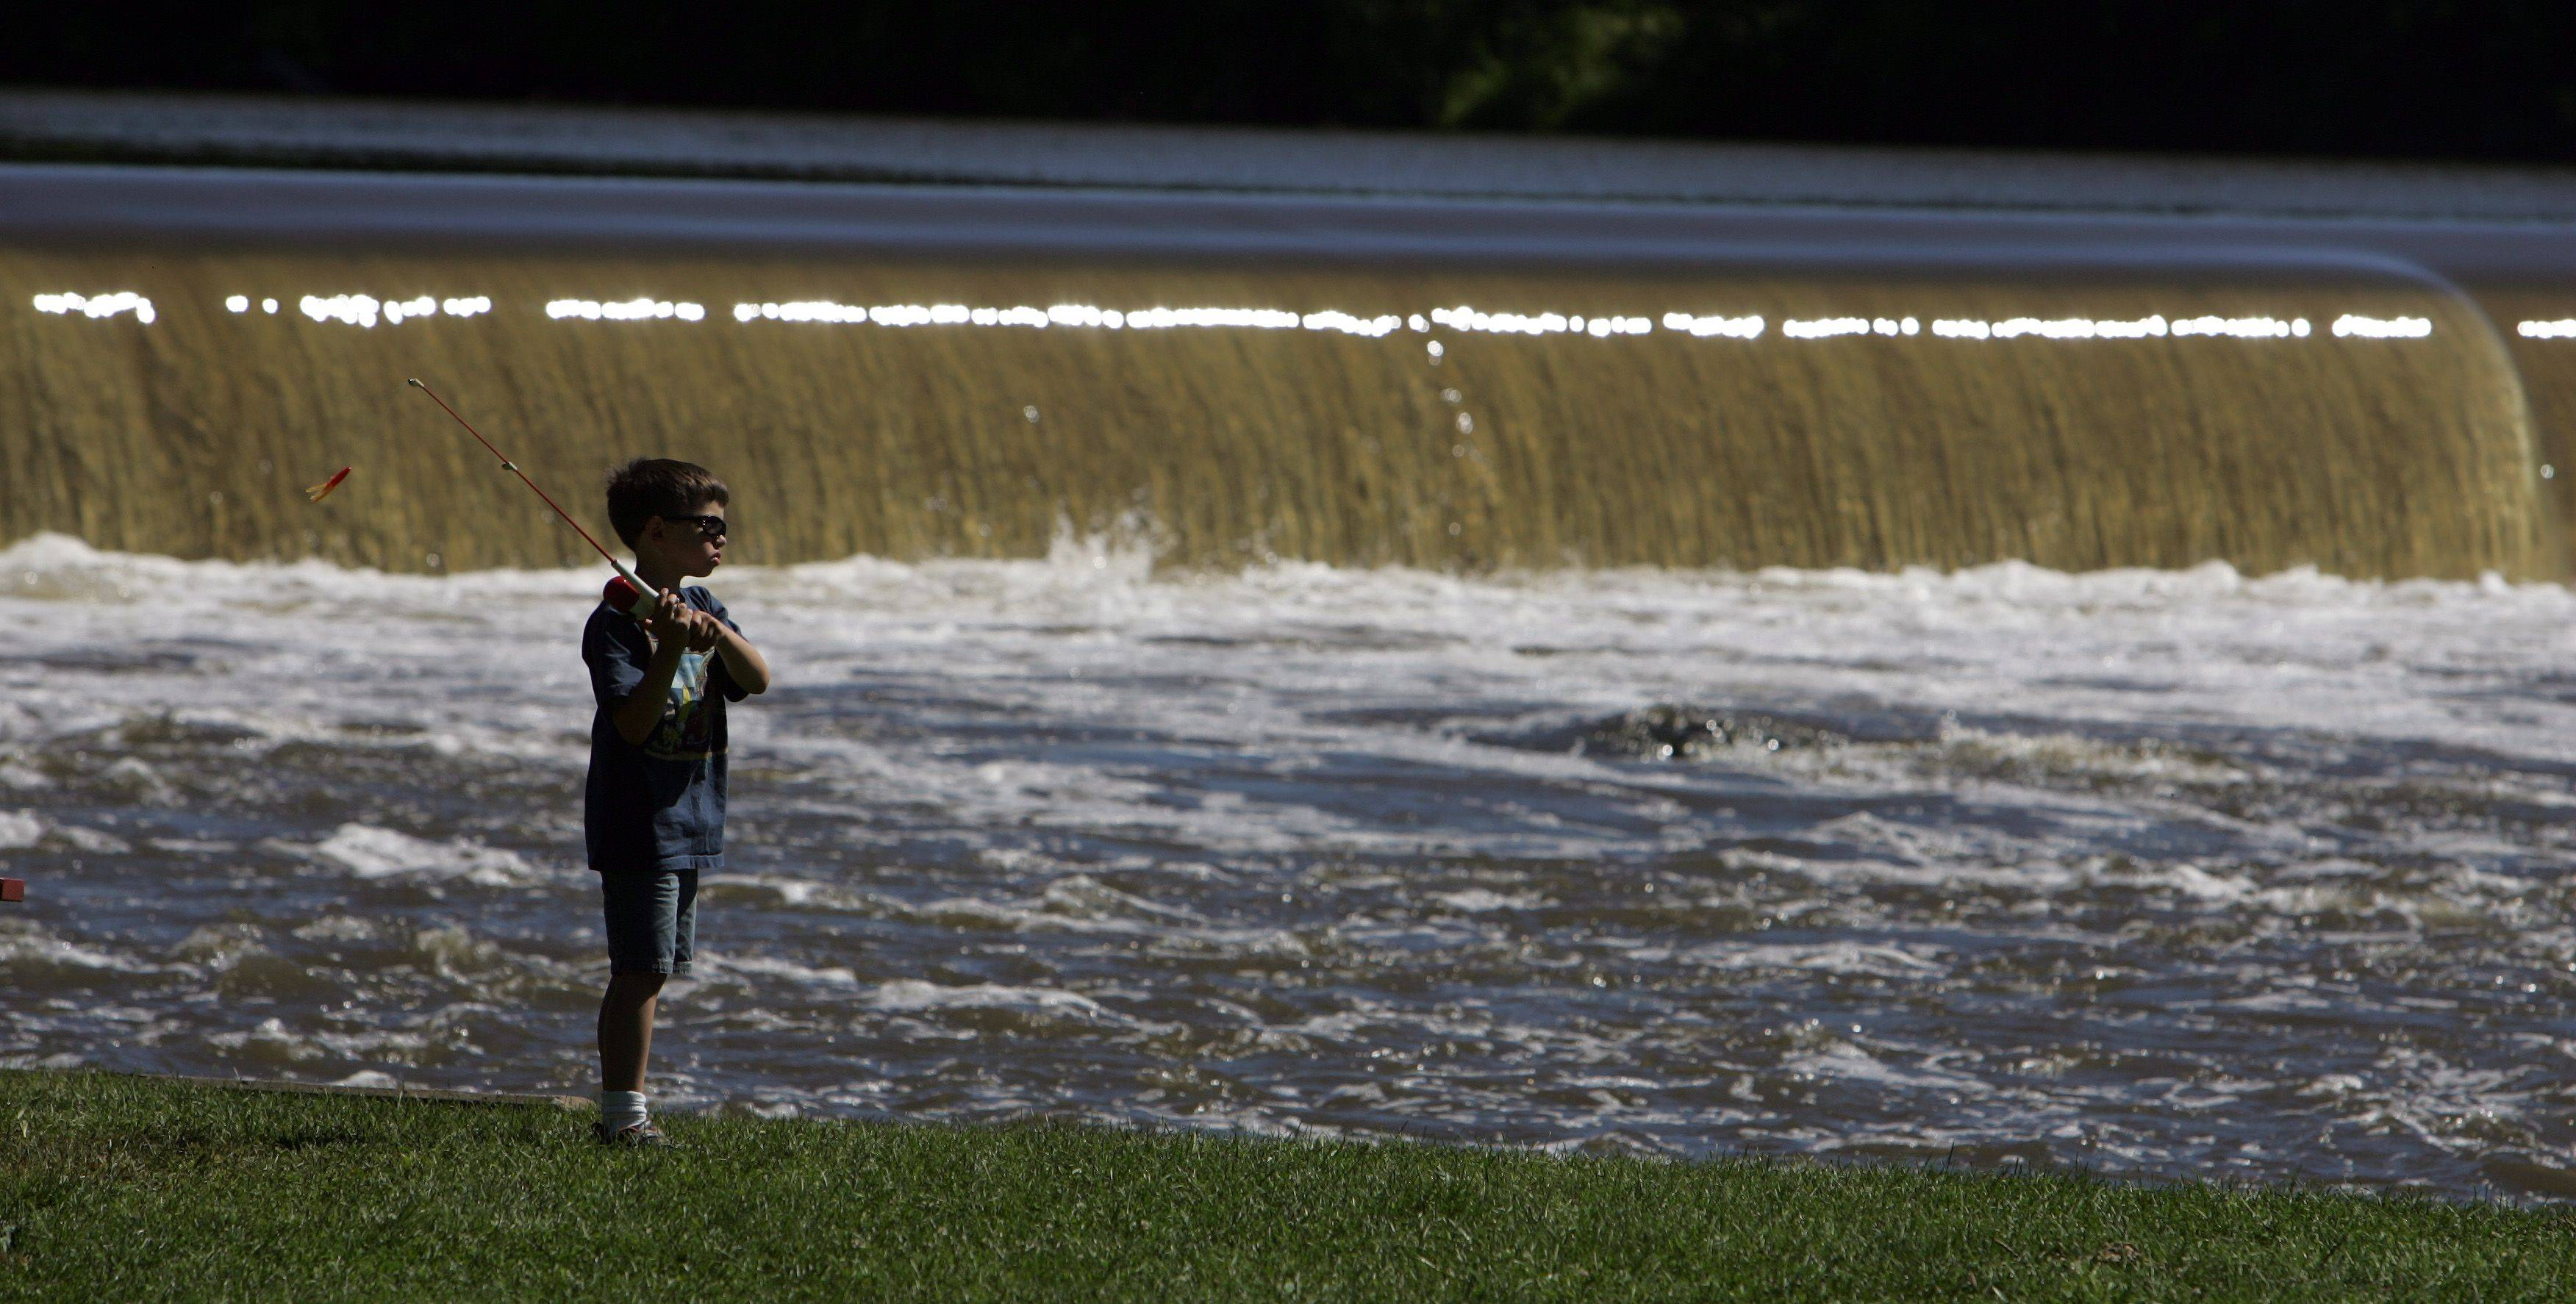 Get ready to cast off during the Tuna Kahuna, a free fishing contest for kids 15 and younger, on Saturday, June 18, at Panton Mill Park in South Elgin.